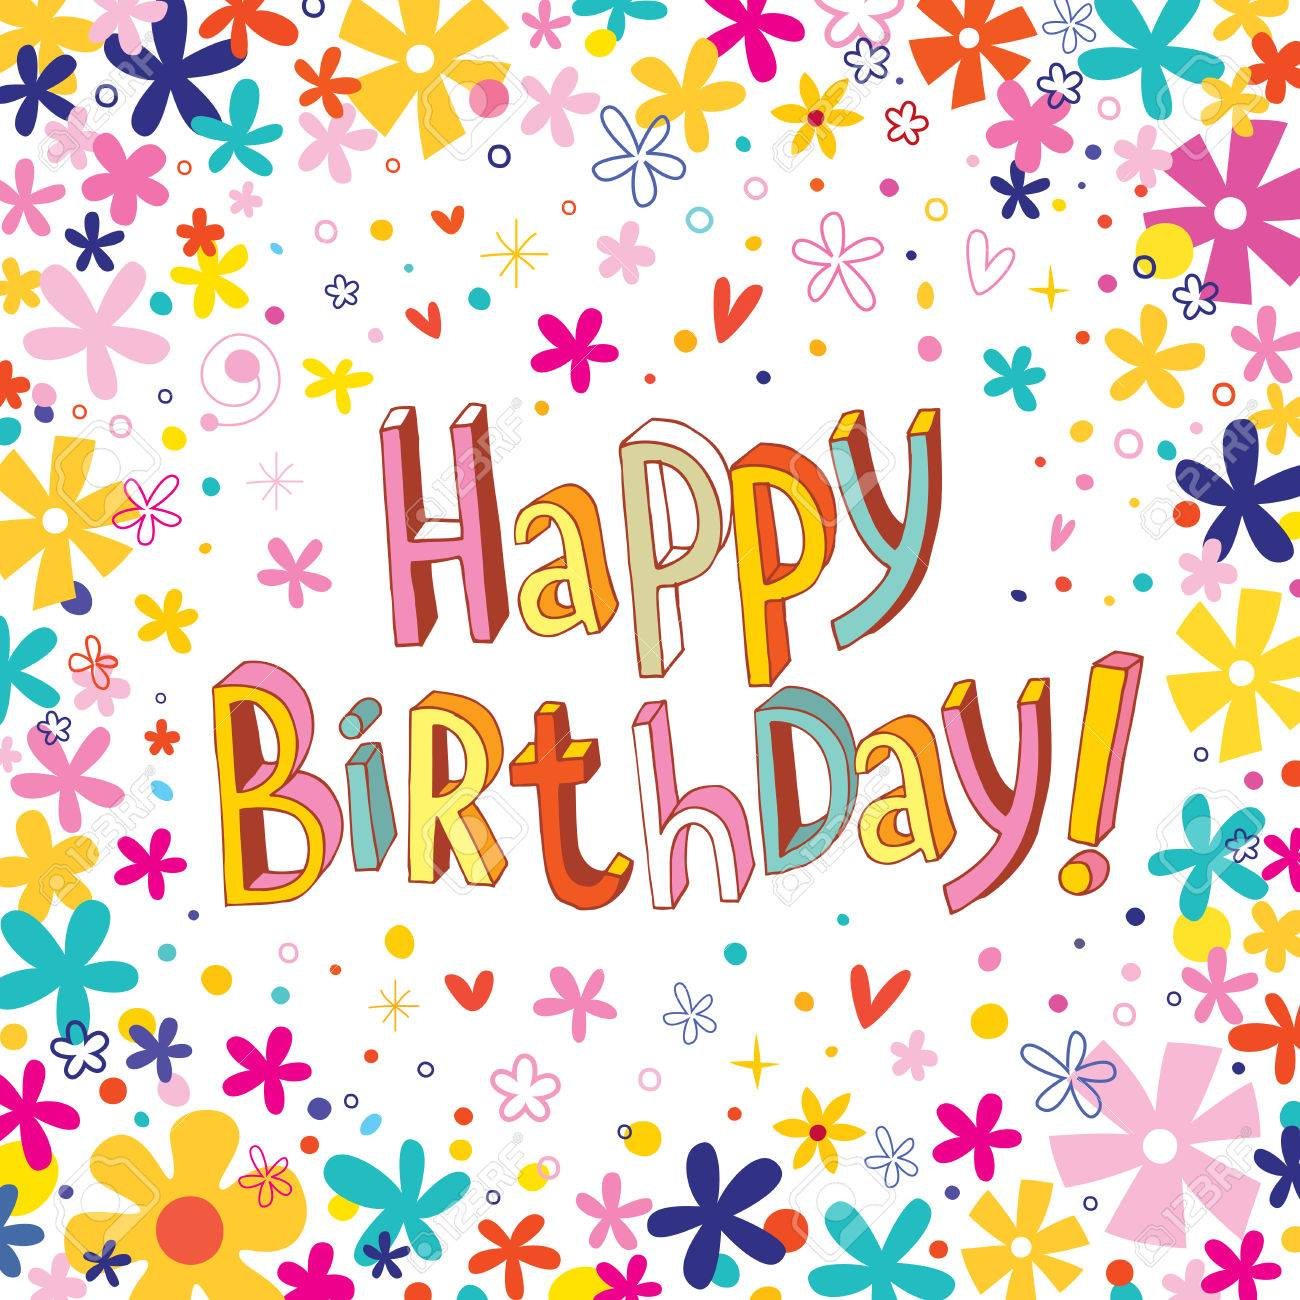 happy birthday greeting card pictures ; 54758865-happy-birthday-greeting-card-Stock-Photo